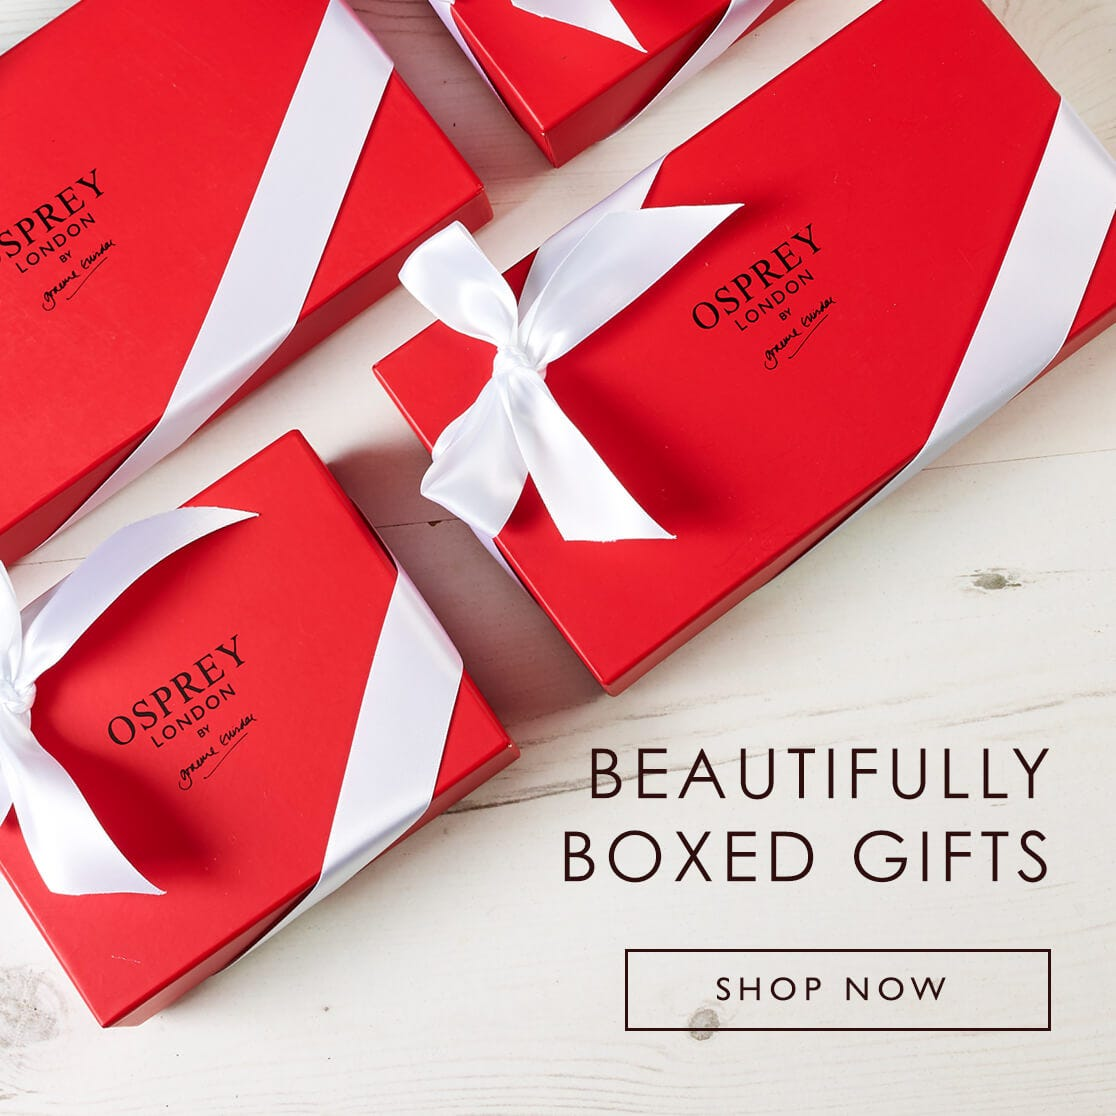 Beautifully Boxed Gifts